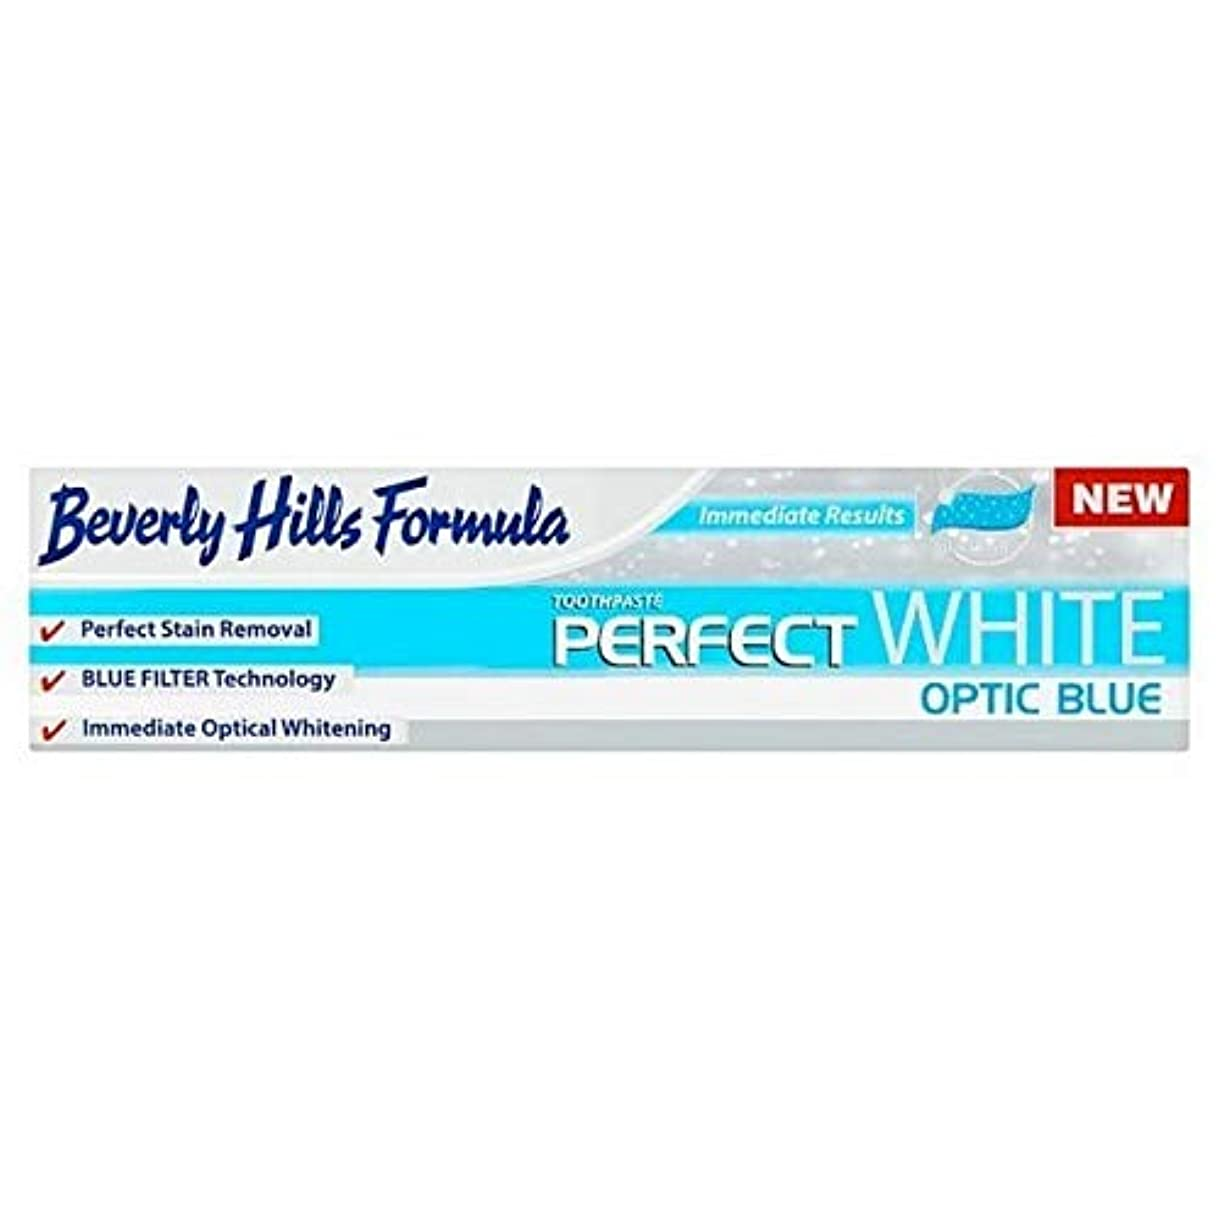 [Beverly Hills ] ビバリーヒルズ公式パーフェクトホワイト歯磨き粉の100ミリリットル - Beverly Hills Formula Perfect White toothpaste 100ml [並行輸入品]